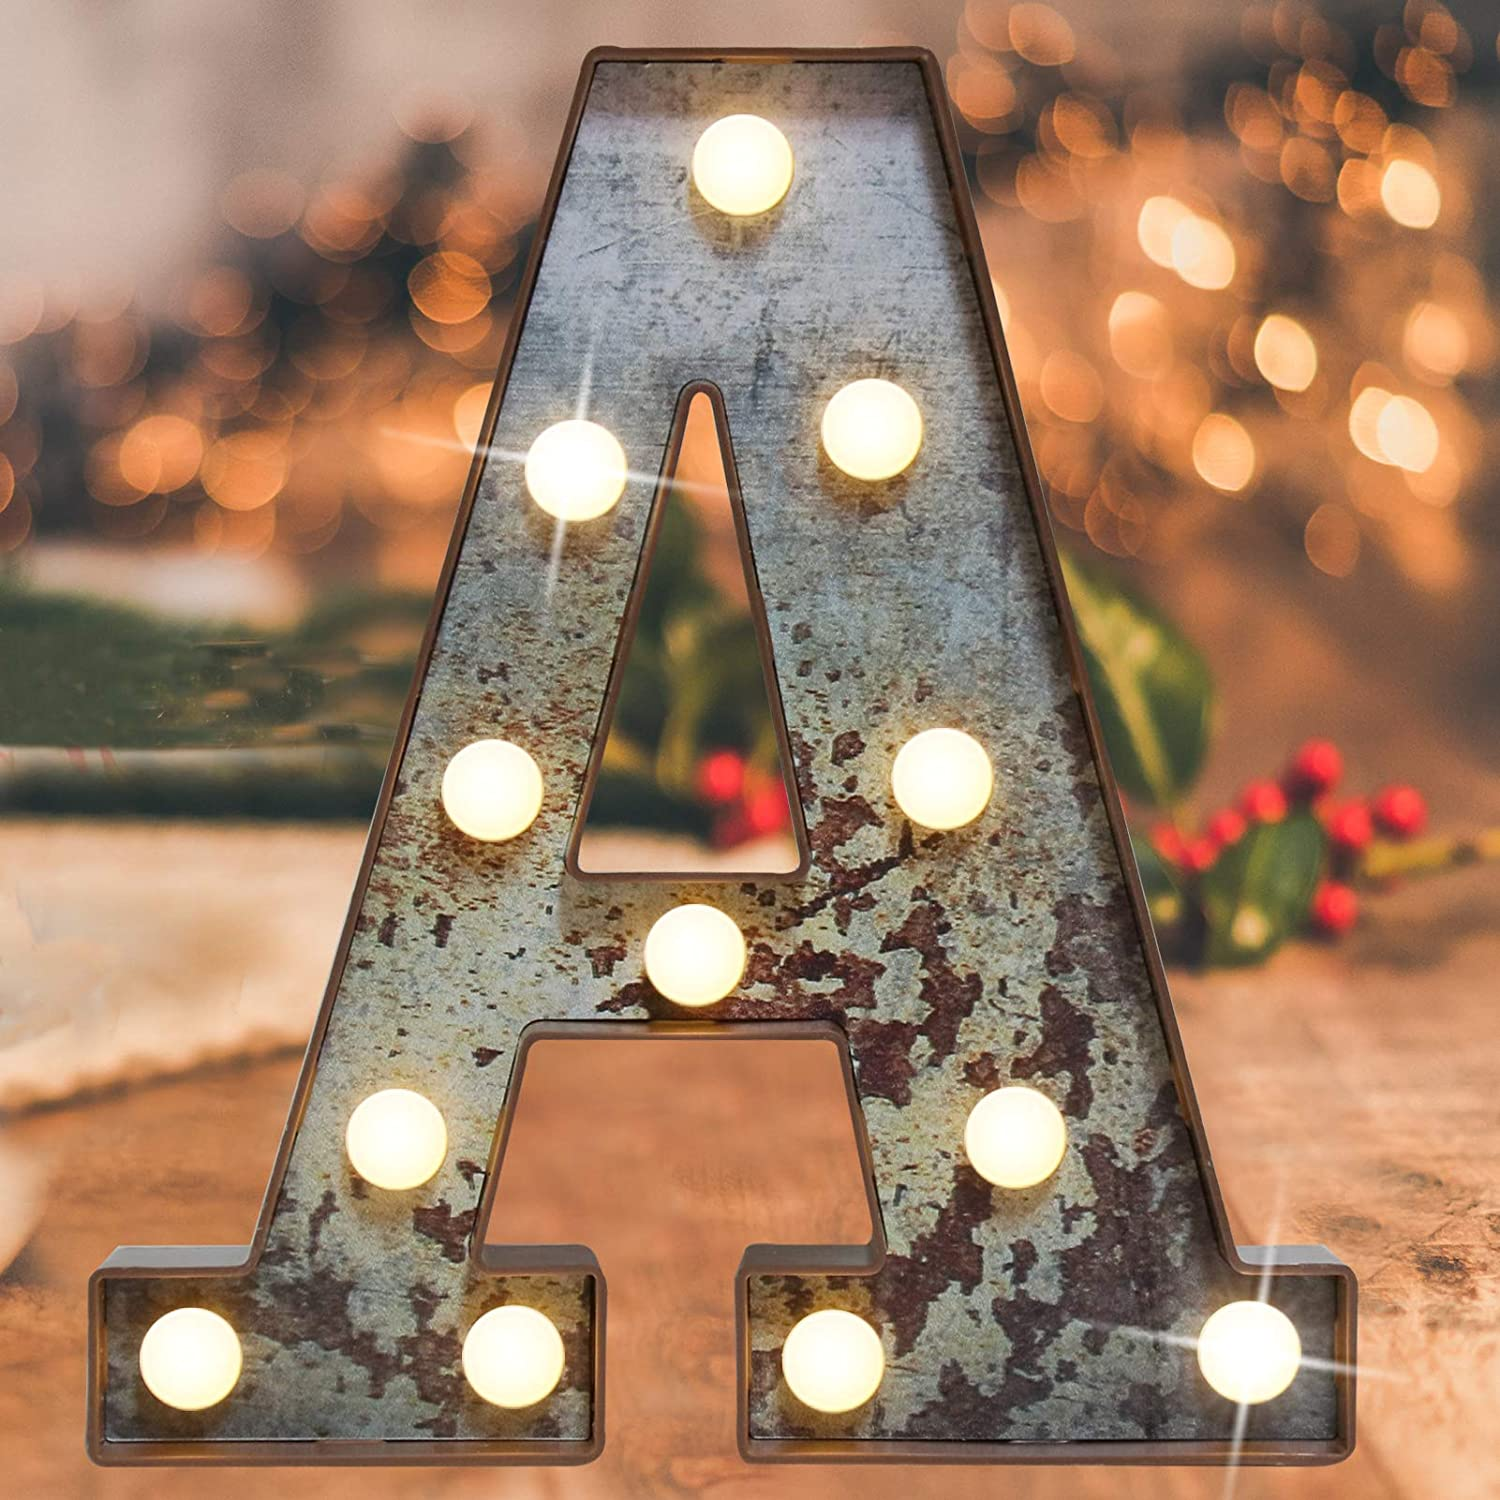 Vintage Illumination Led Marquee Letter Lights,Iron Effect Industrial Style Light Up Alphabet Letter Sign for Cafe Wedding Birthday Party Christmas Lamp Home Bar Initials Decor(Rusty letter A)